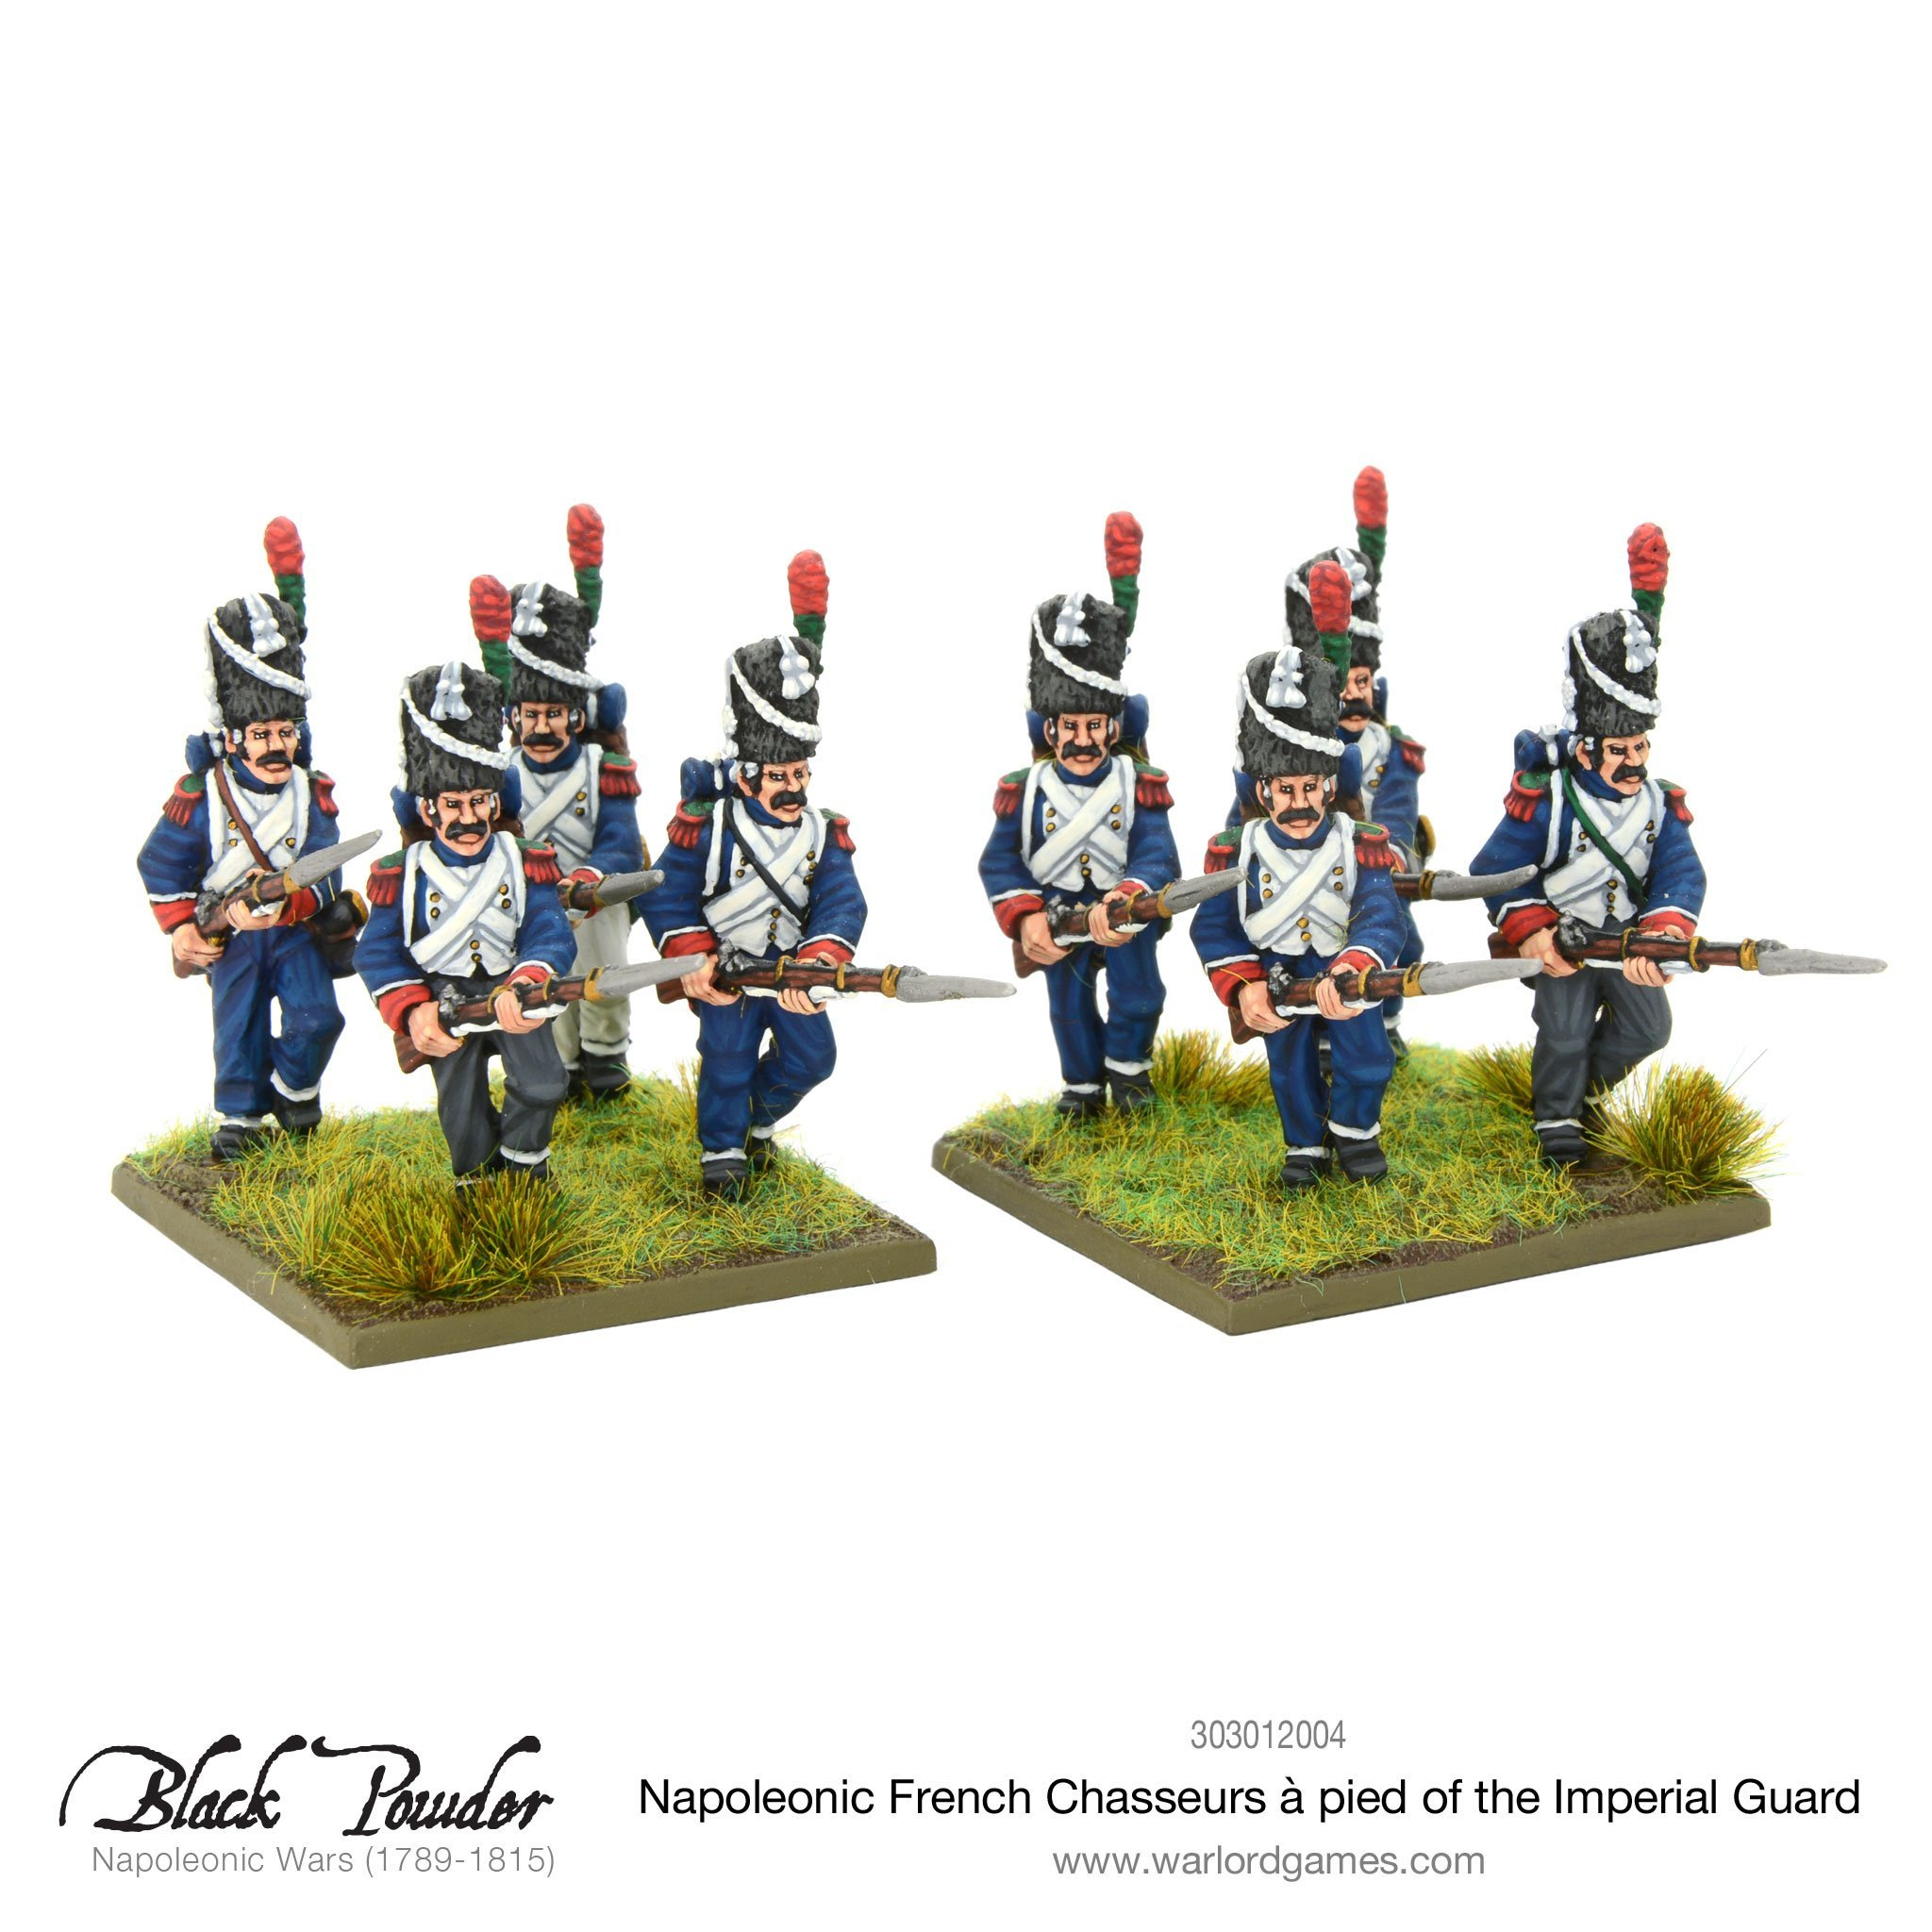 Black Powder Napoleonic Wars: Napoleonic French Chasseurs a Pied of the Imperial Guard